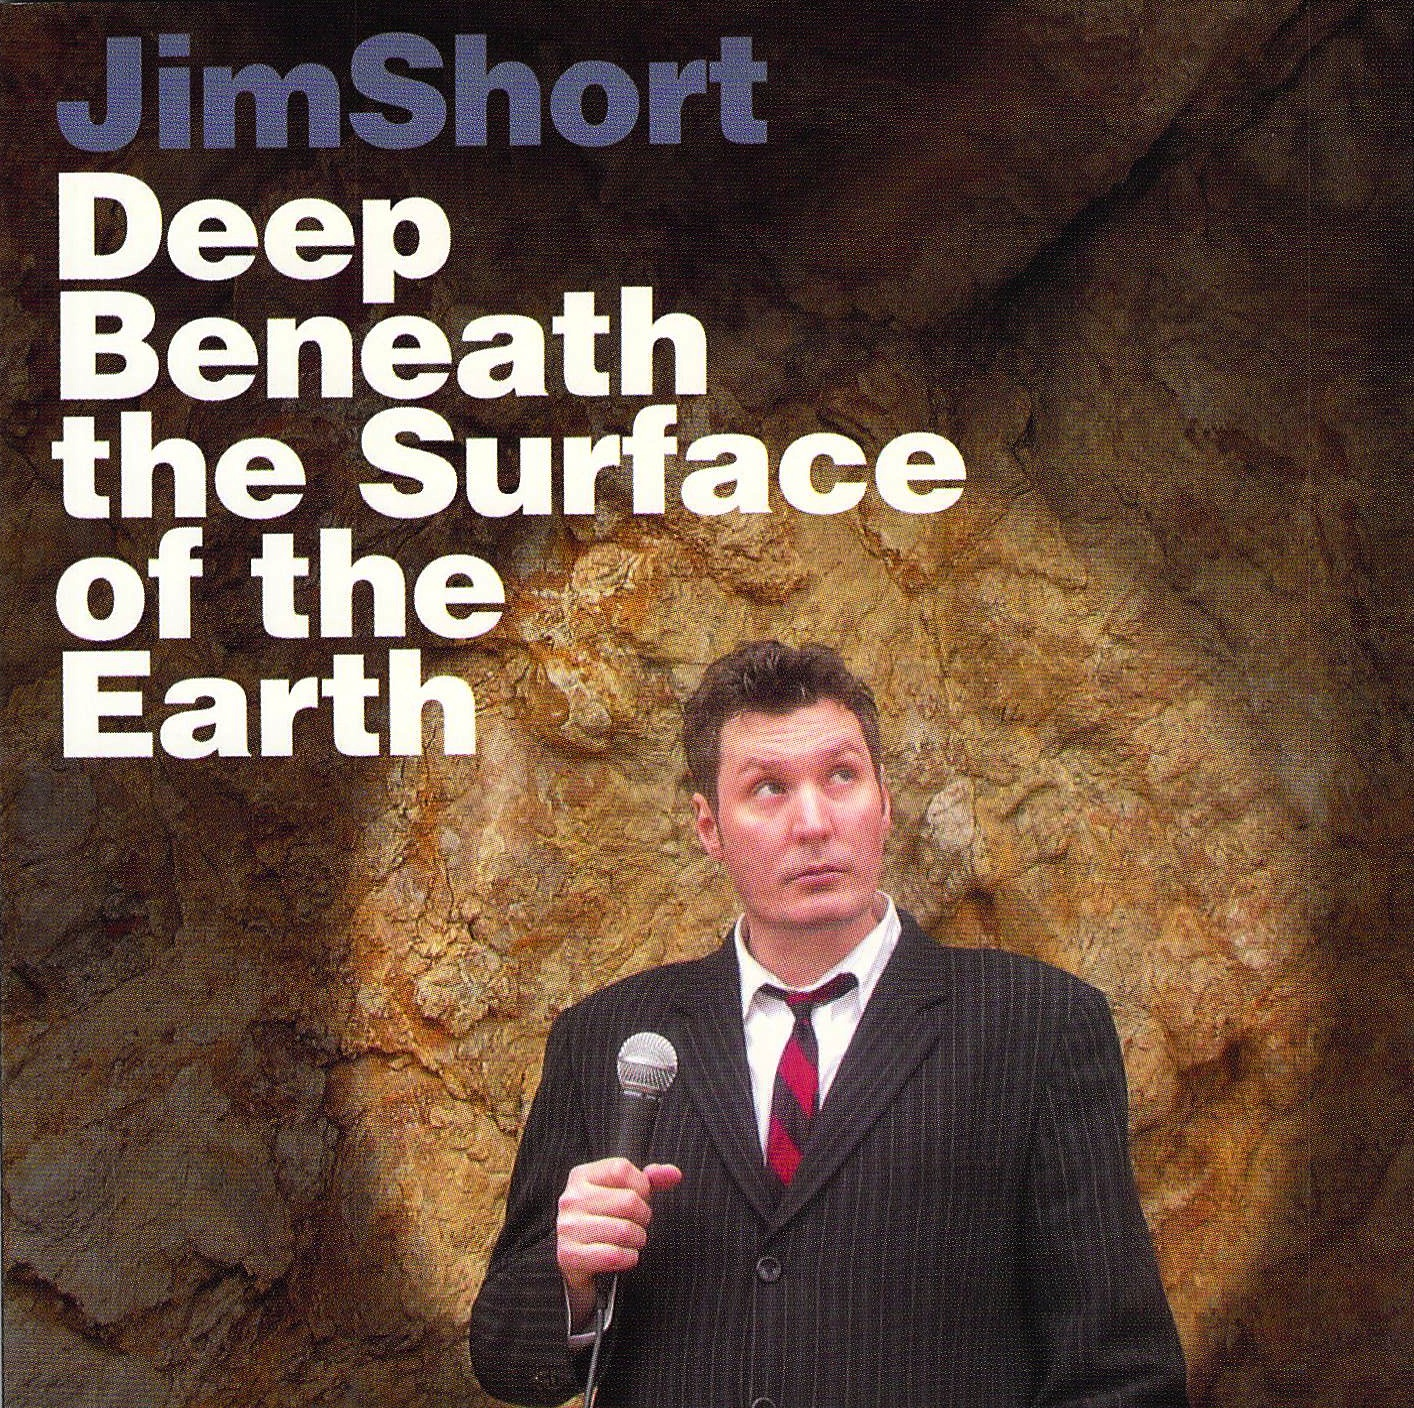 Jim Short: Beneath the surface of the earth